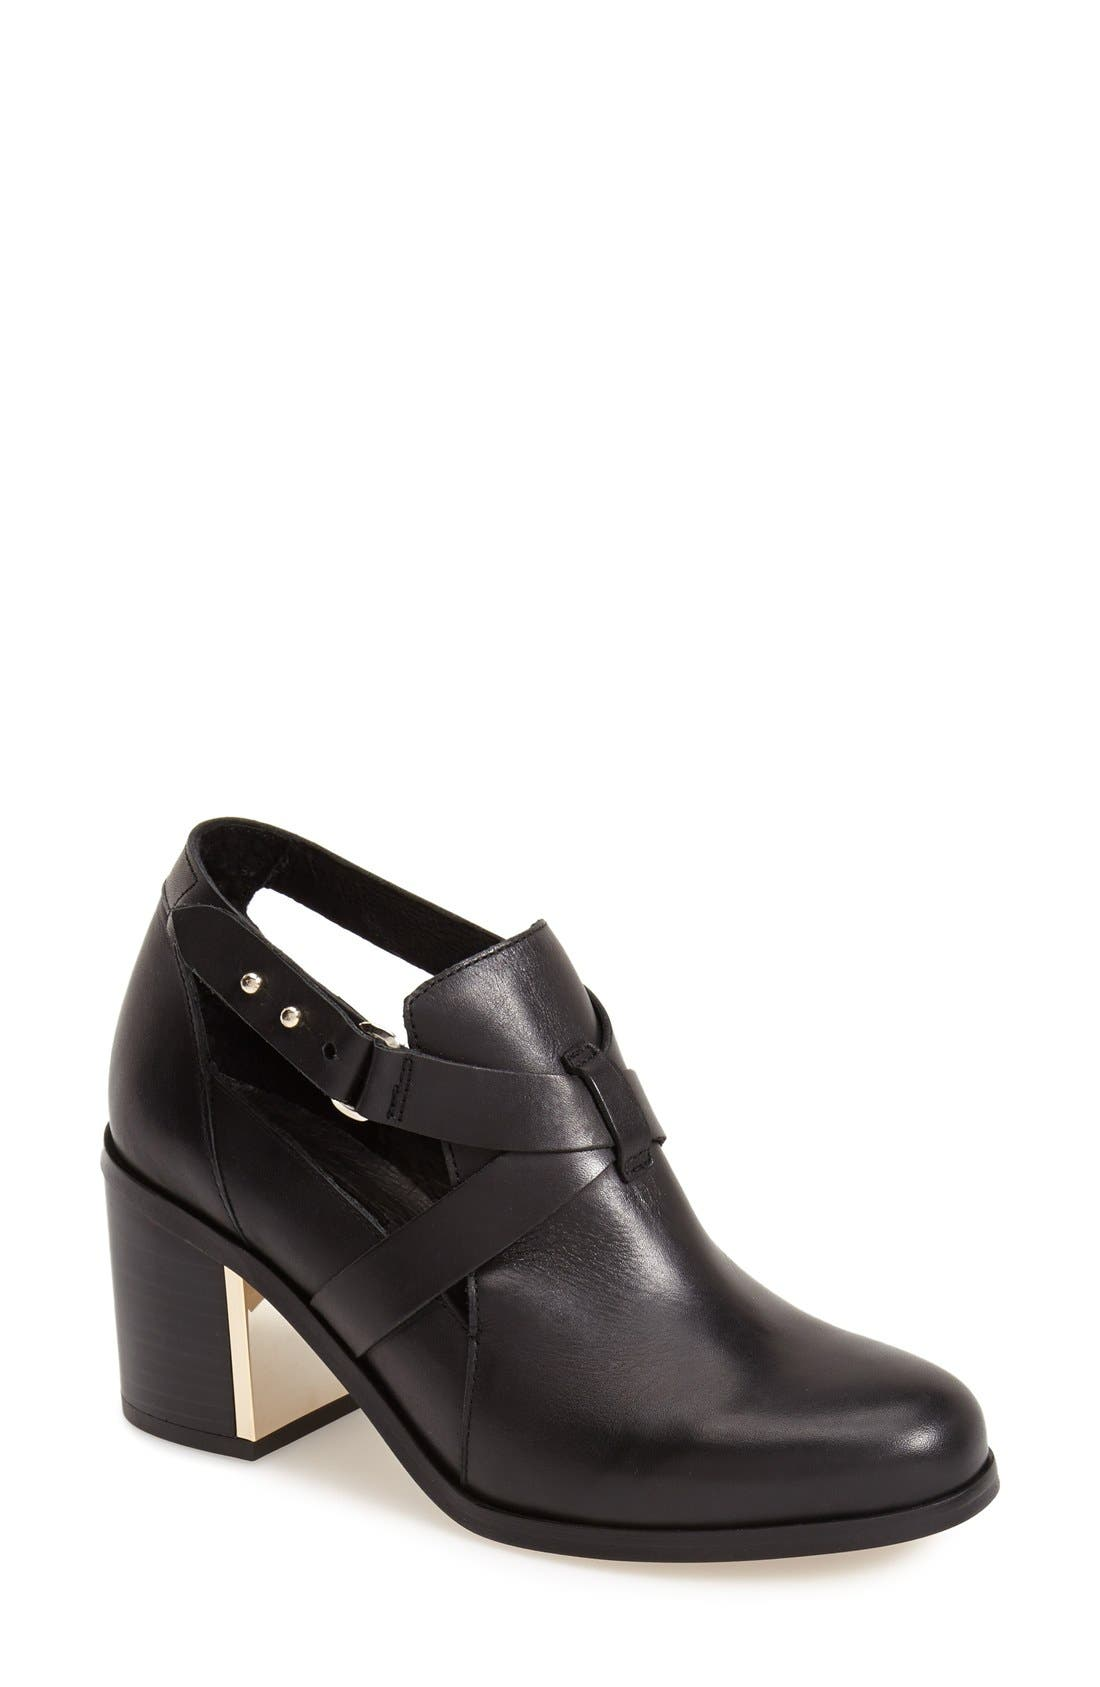 TOPSHOP 'Mirror' Crisscross Strap Leather Ankle Boot, Main, color, 001